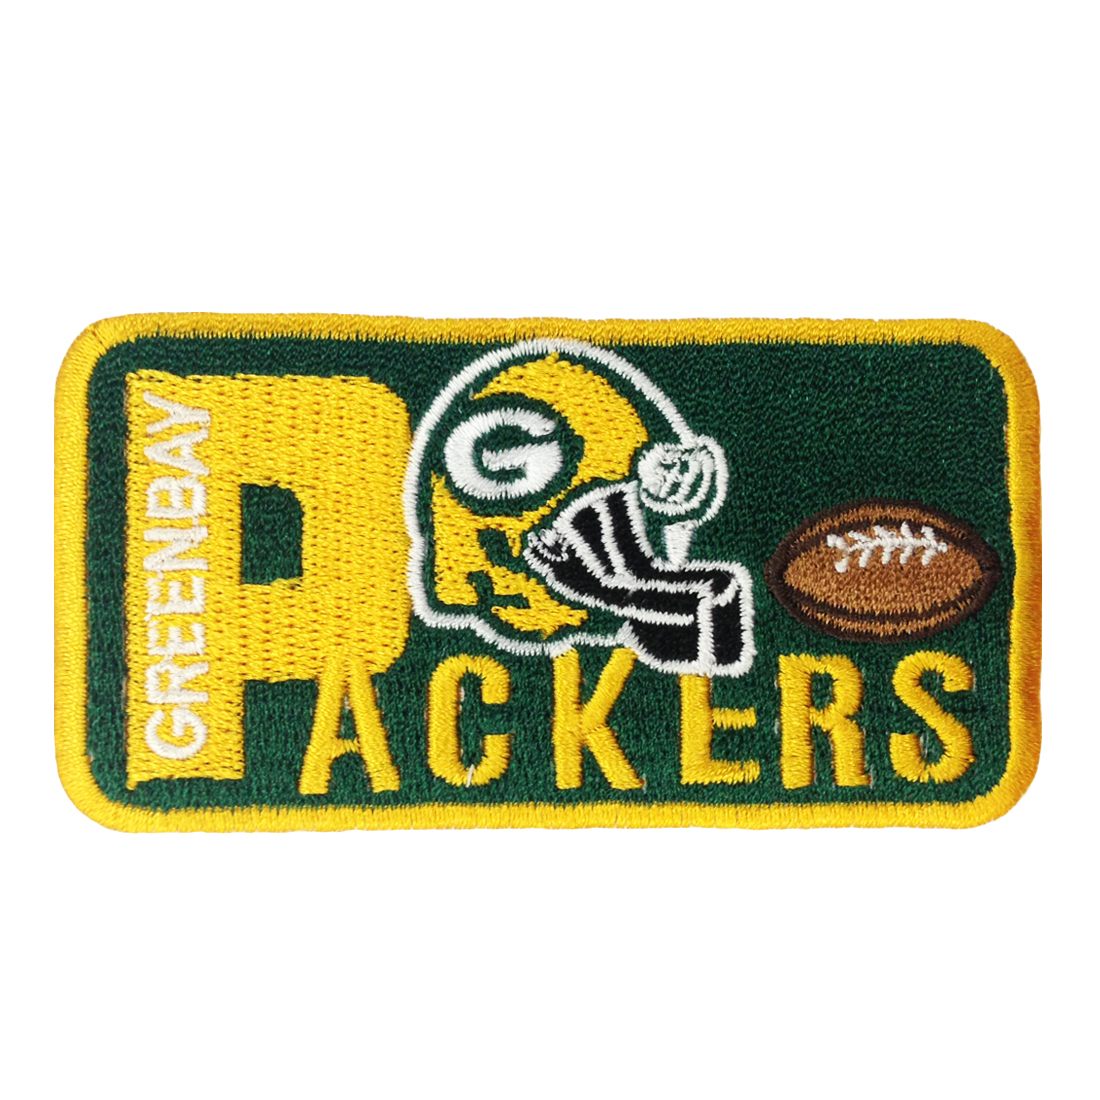 Green bay packers iron on logo patches